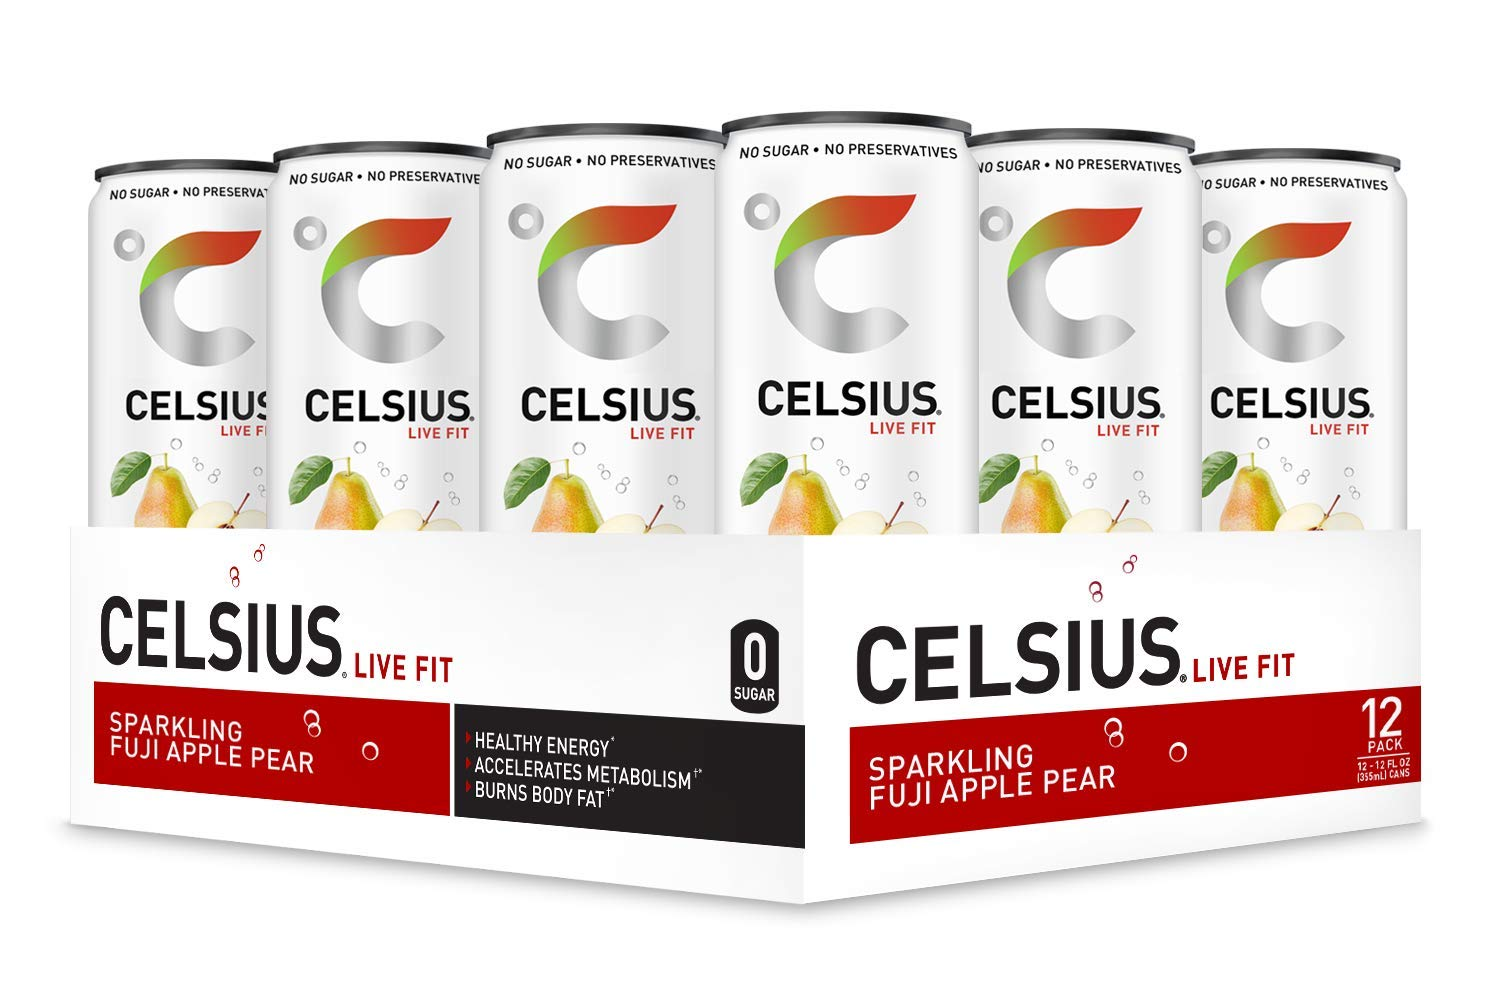 CELSIUS Sparkling Fuji Apple Pear Fitness Drink, Zero Sugar, 12oz. Slim Can, 12 Pack by CELSIUS